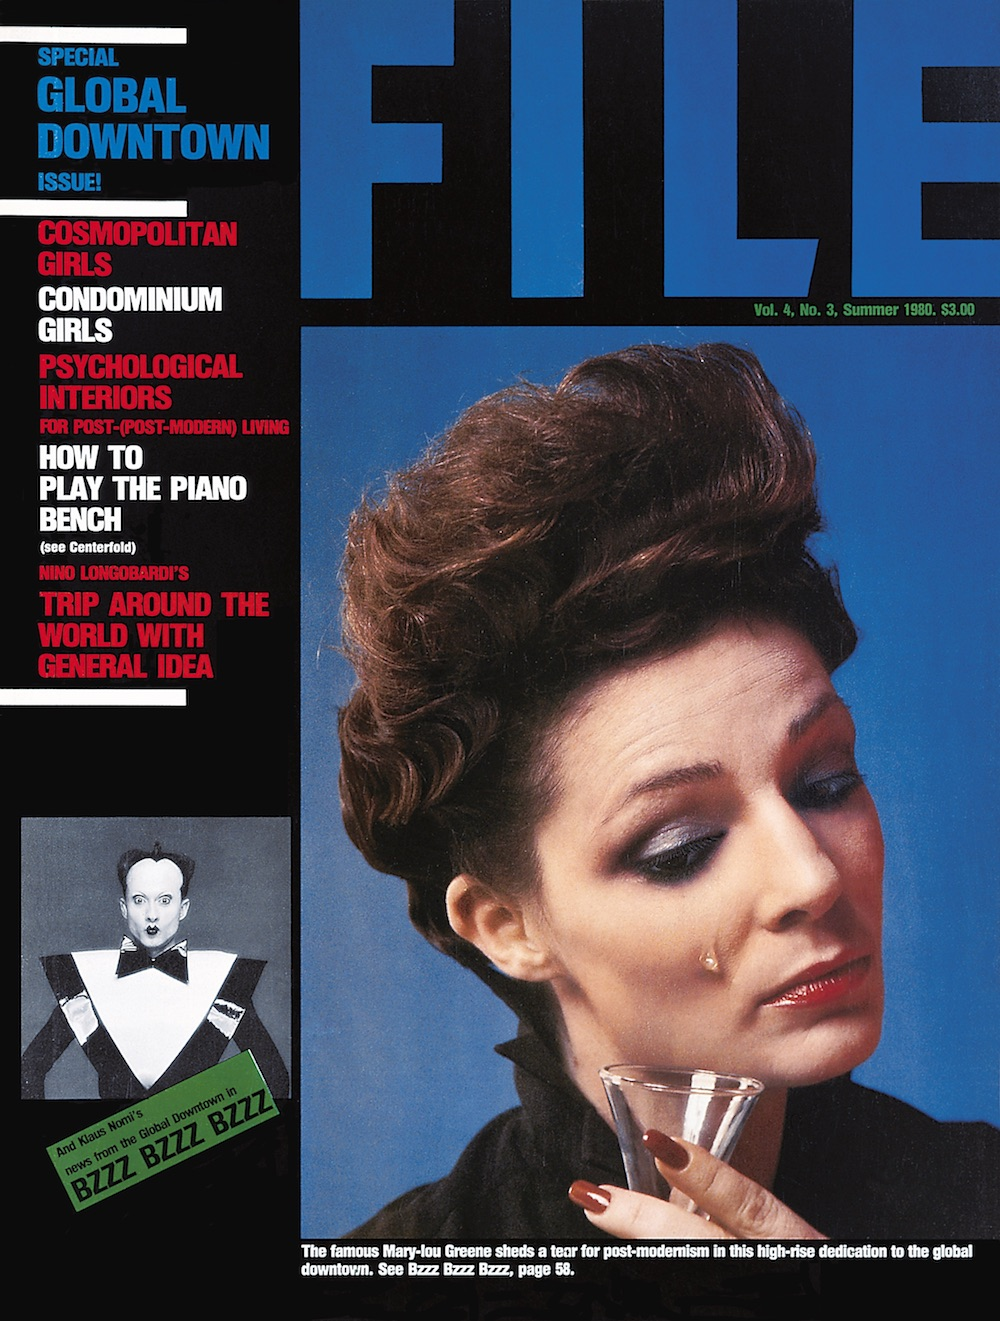 File magazine, Vol 4, No3, summer 1980